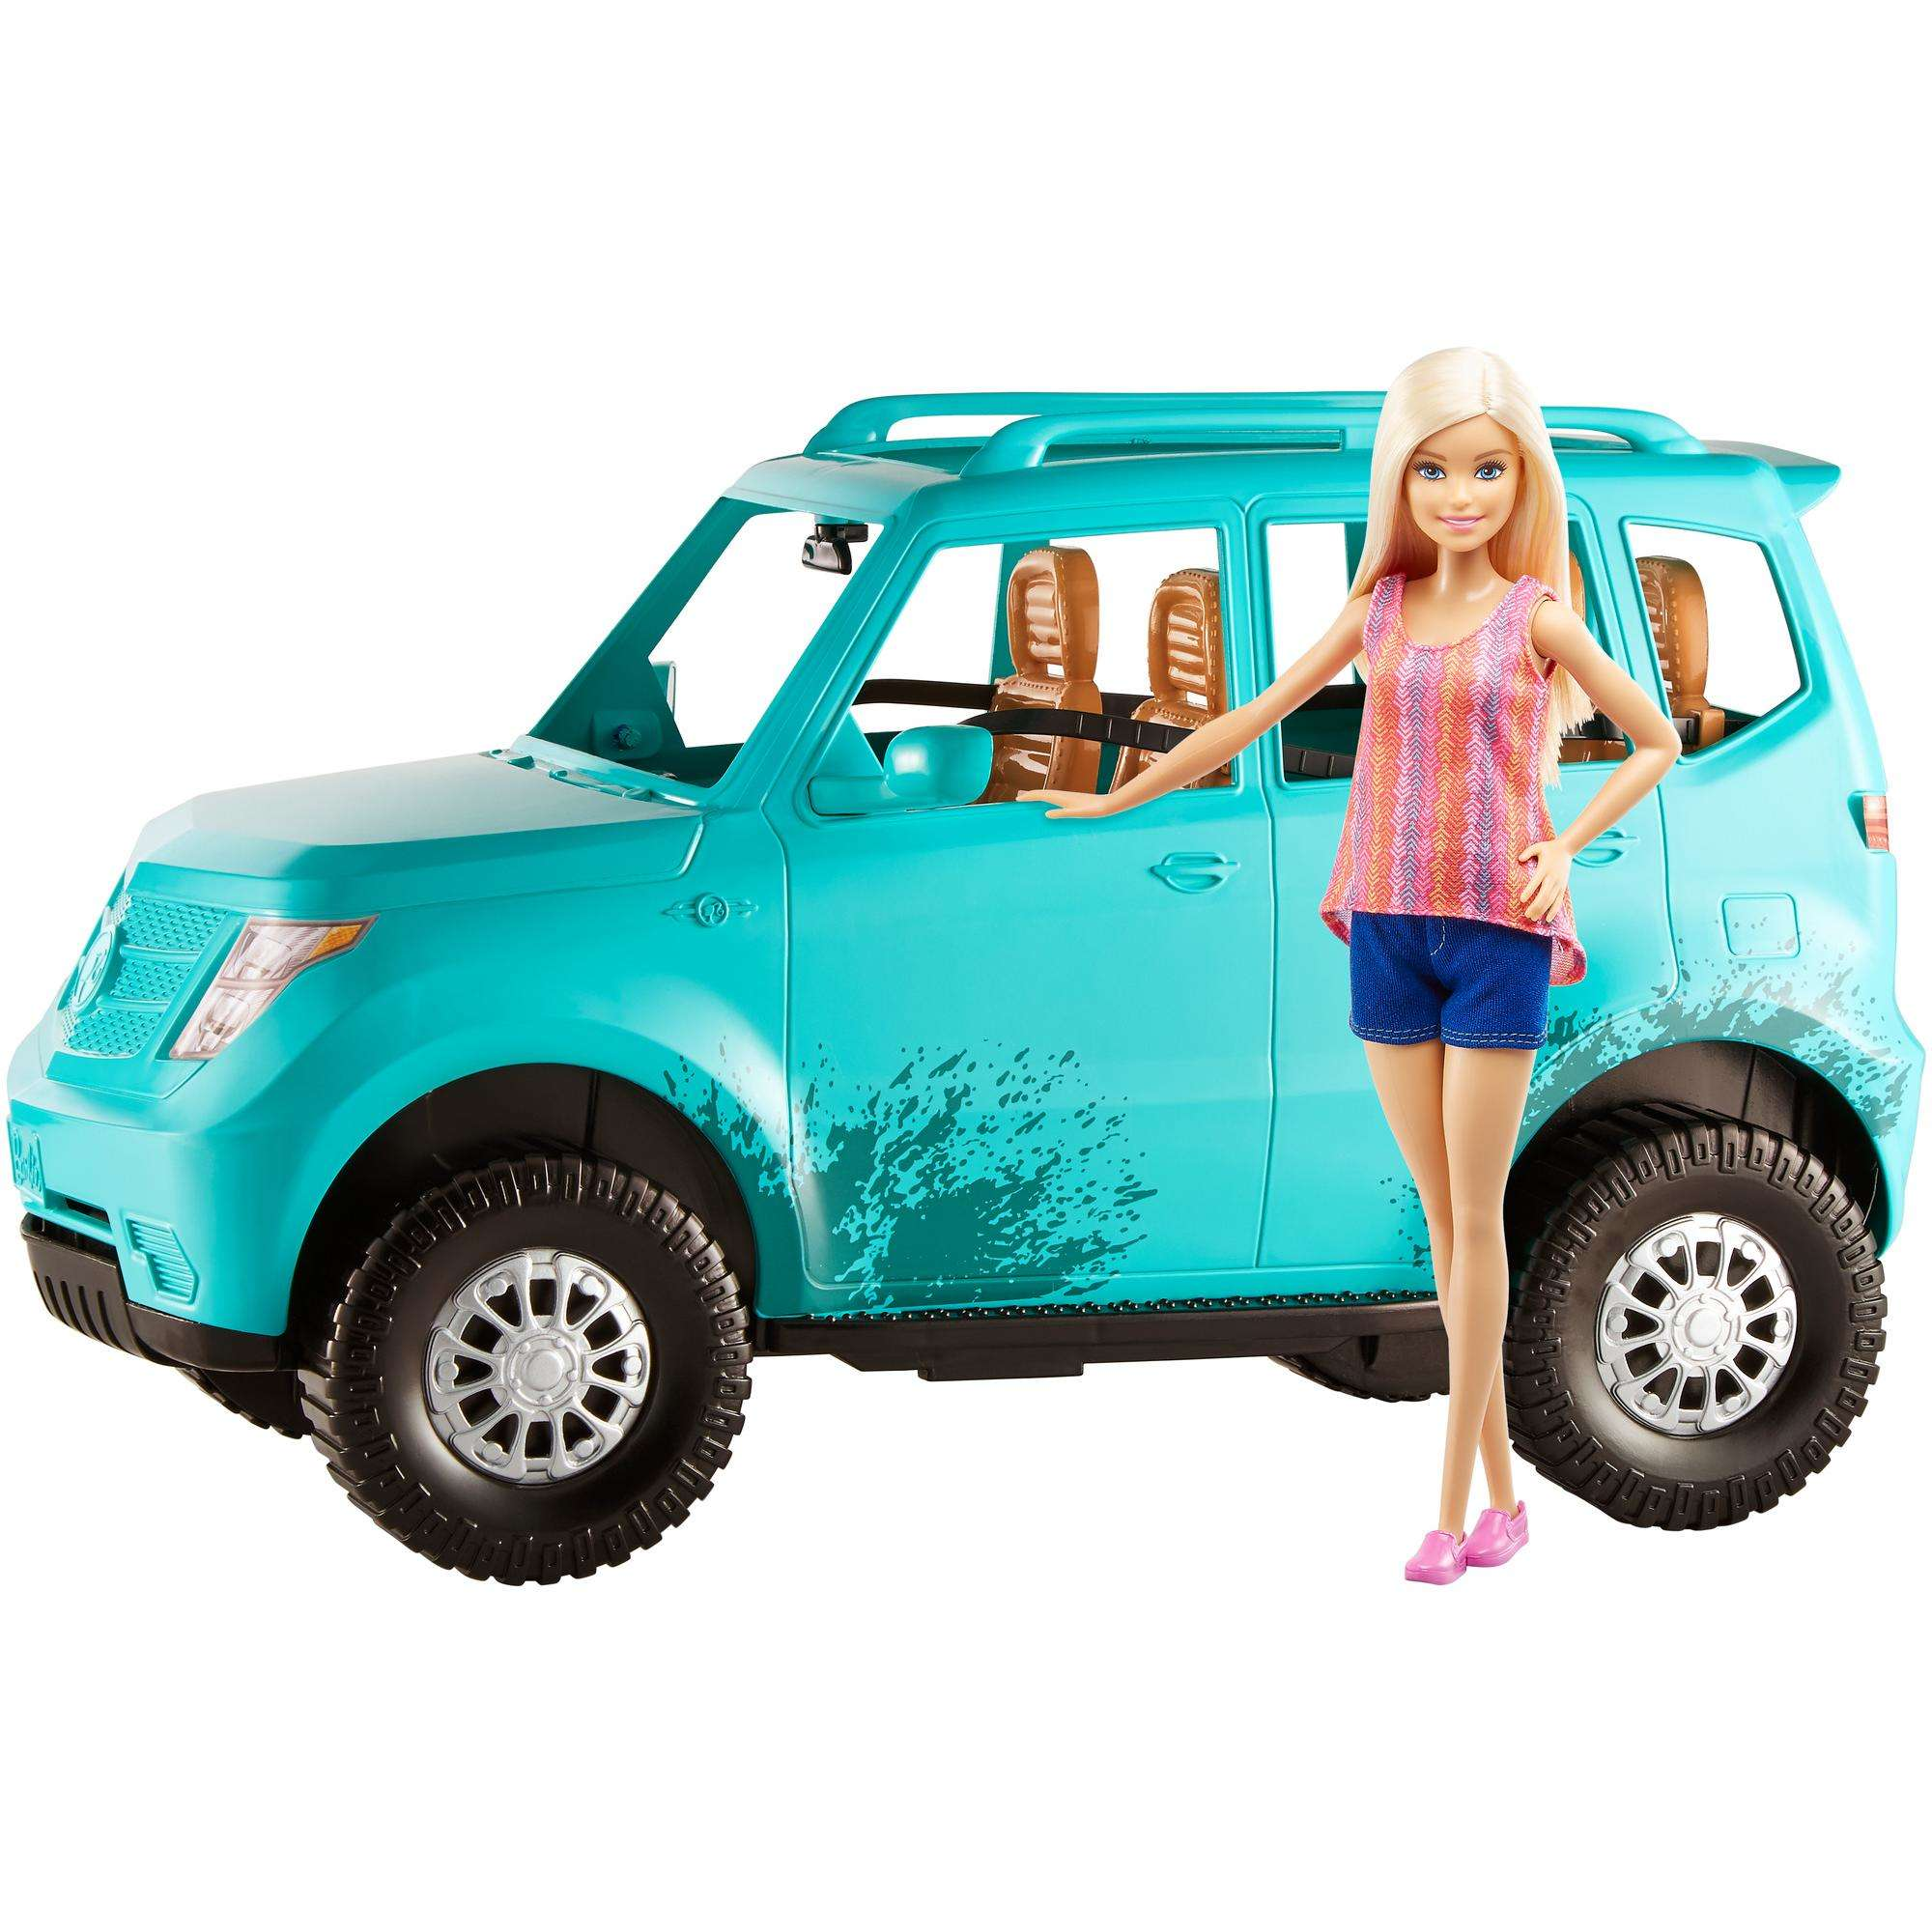 Barbie Camping Fun Doll and Vehicle by MATTEL BRANDS A DIVISION OF MATTEL DIRECT IMPORT INC